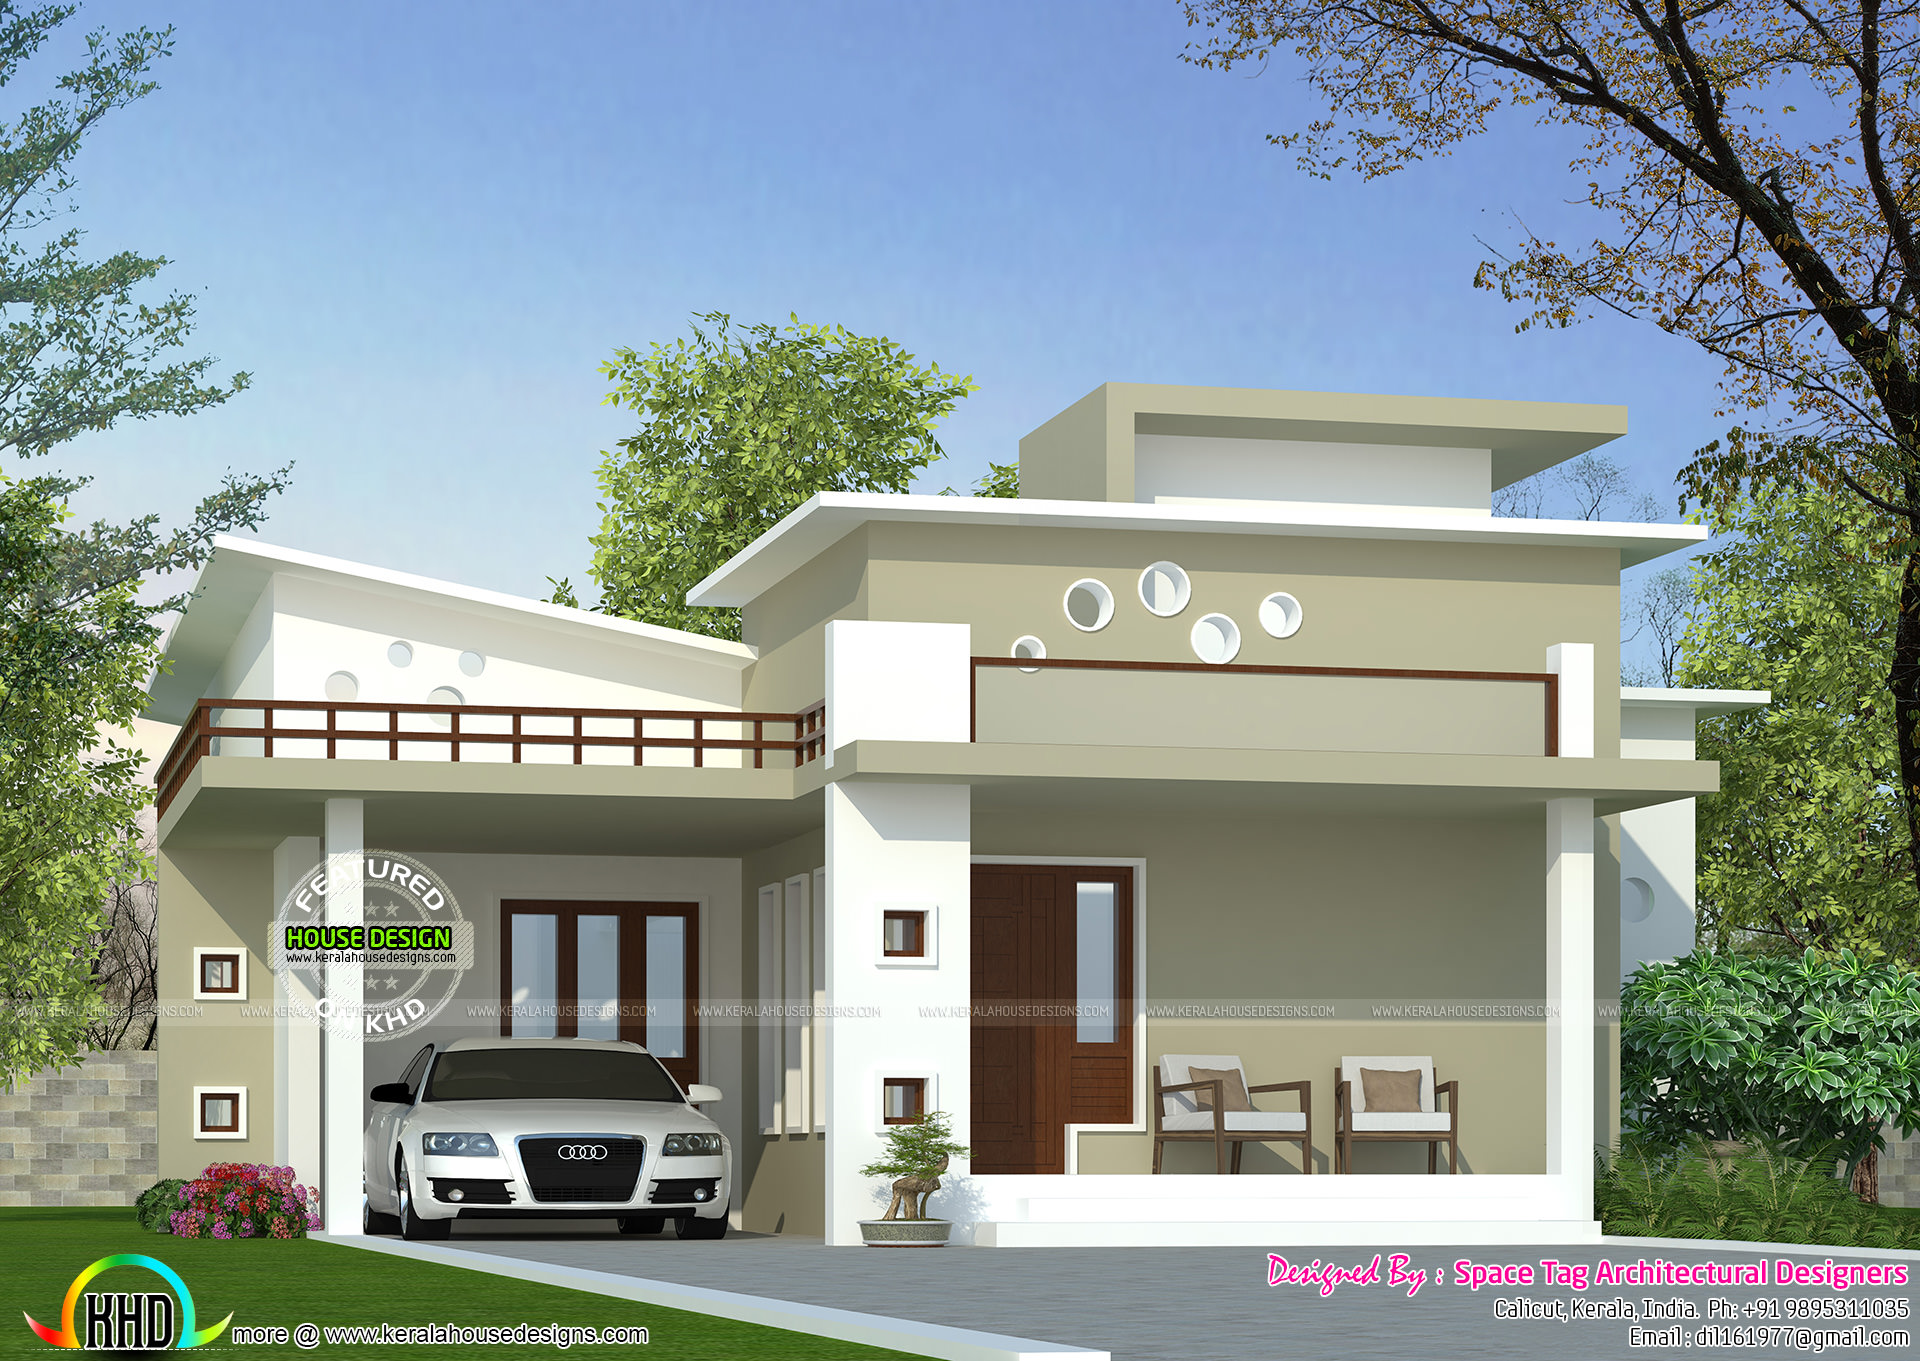 Low cost kerala home design kerala home design and floor for Kerala home designs low cost